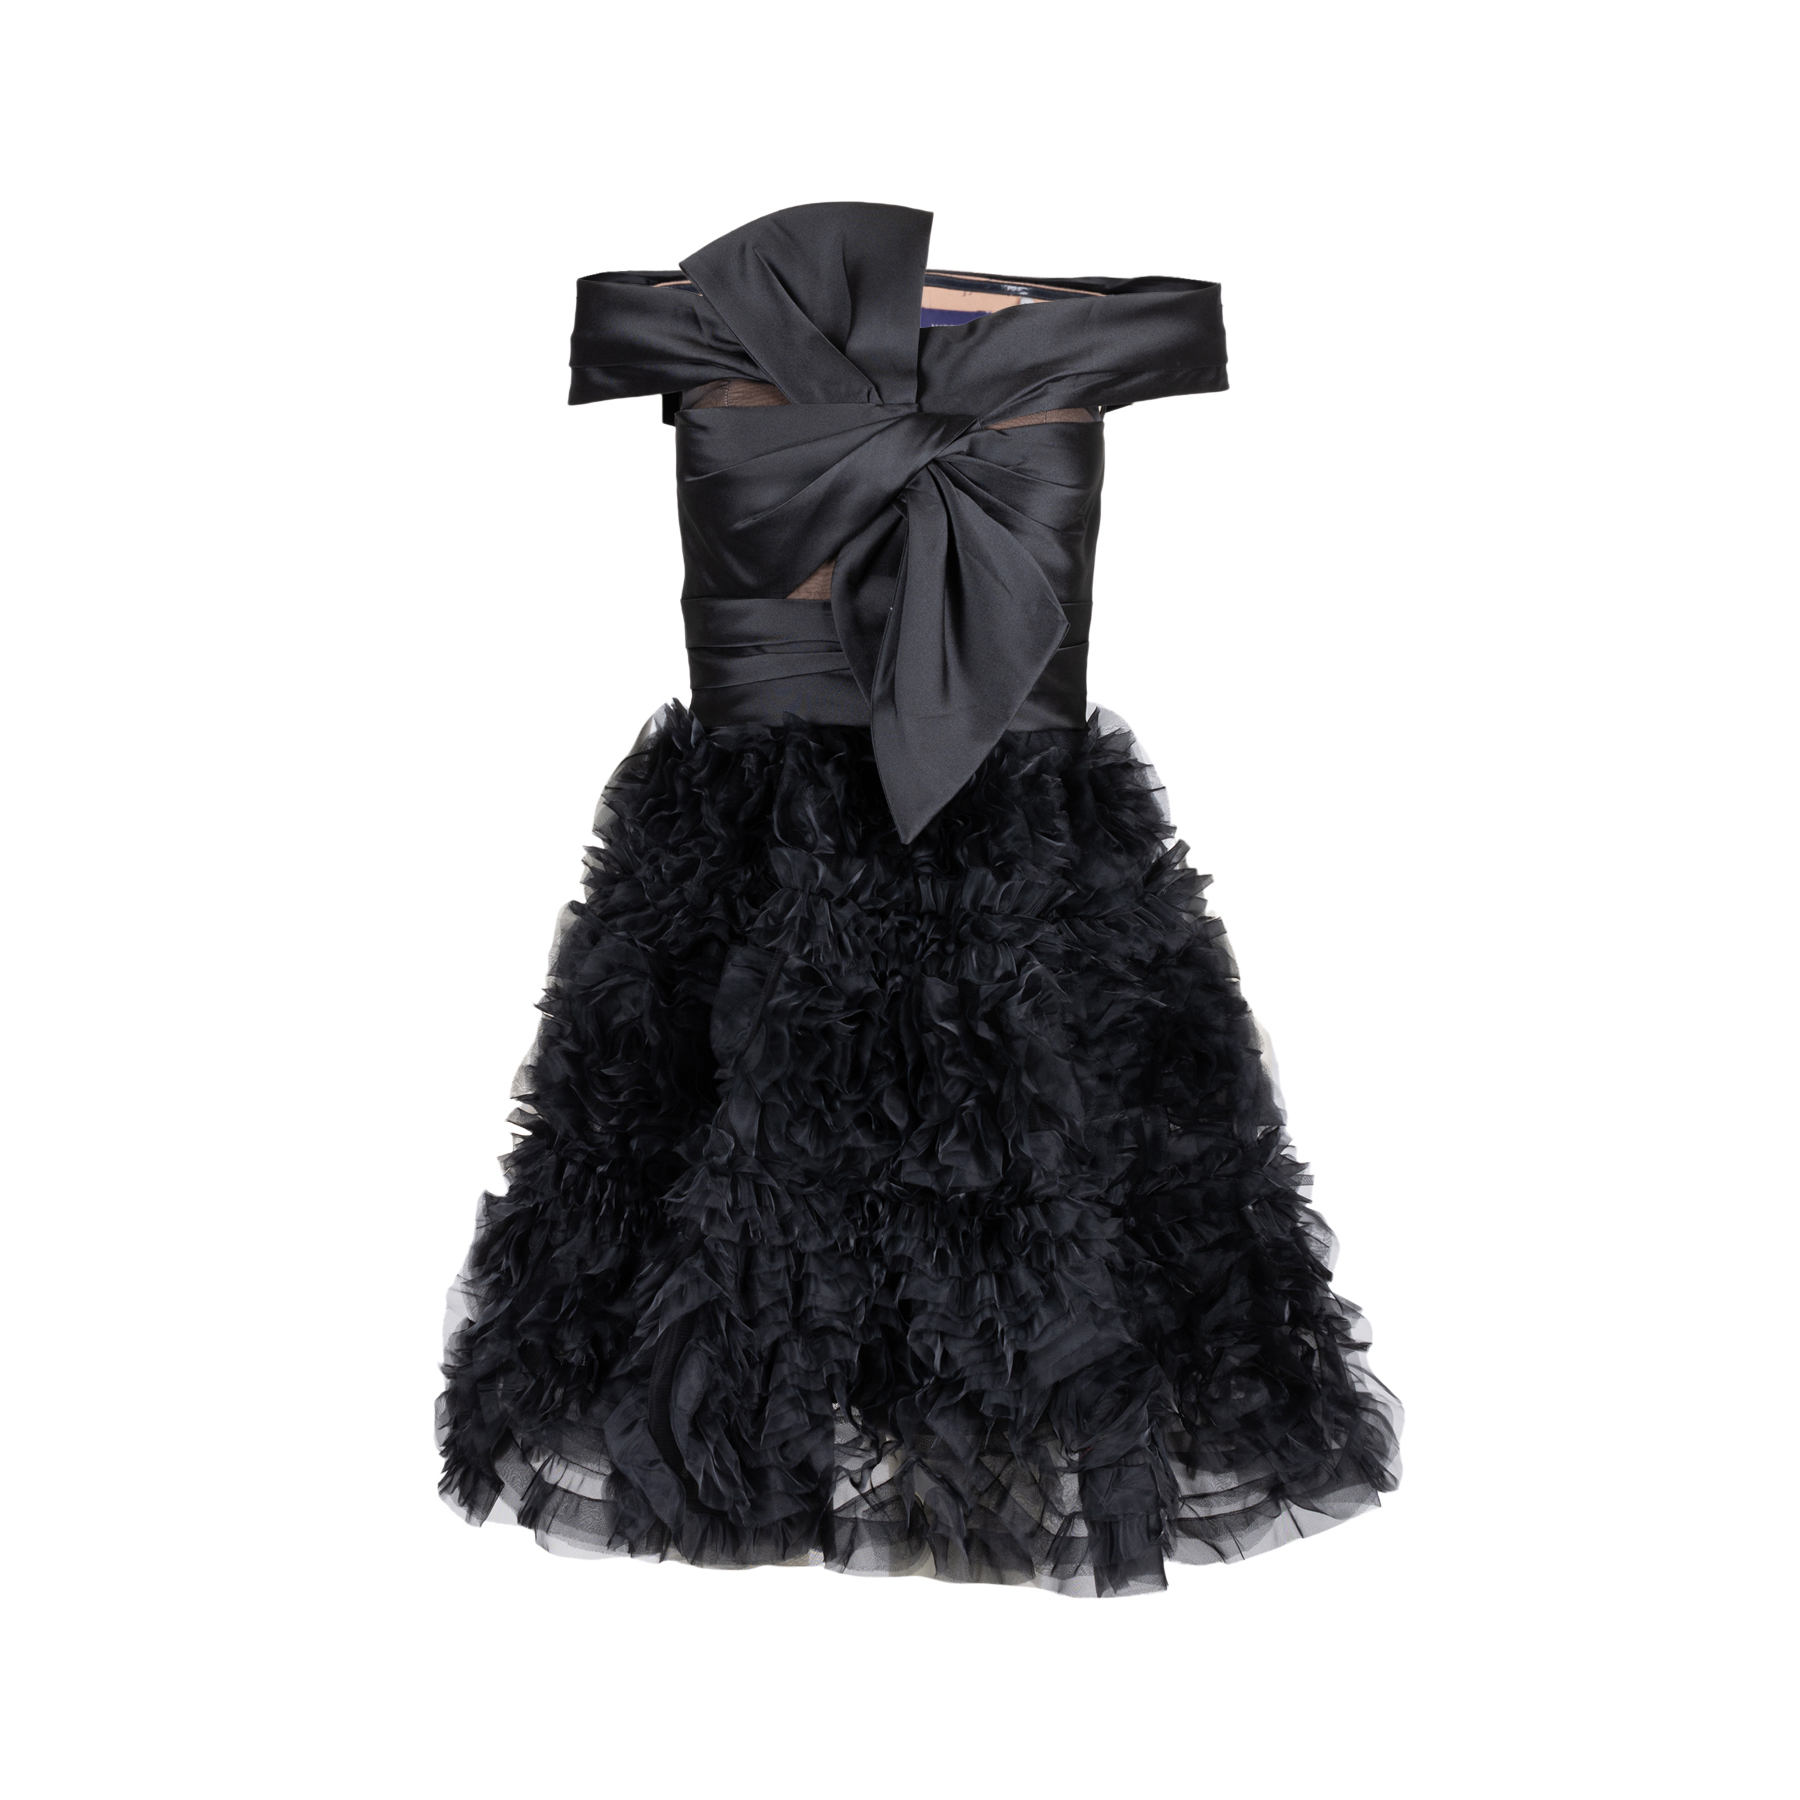 a568b947 Authentic Second Hand Marchesa Notte Off-Shoulder Ruffled Mini Dress  (PSS-515-00222) - THE FIFTH COLLECTION